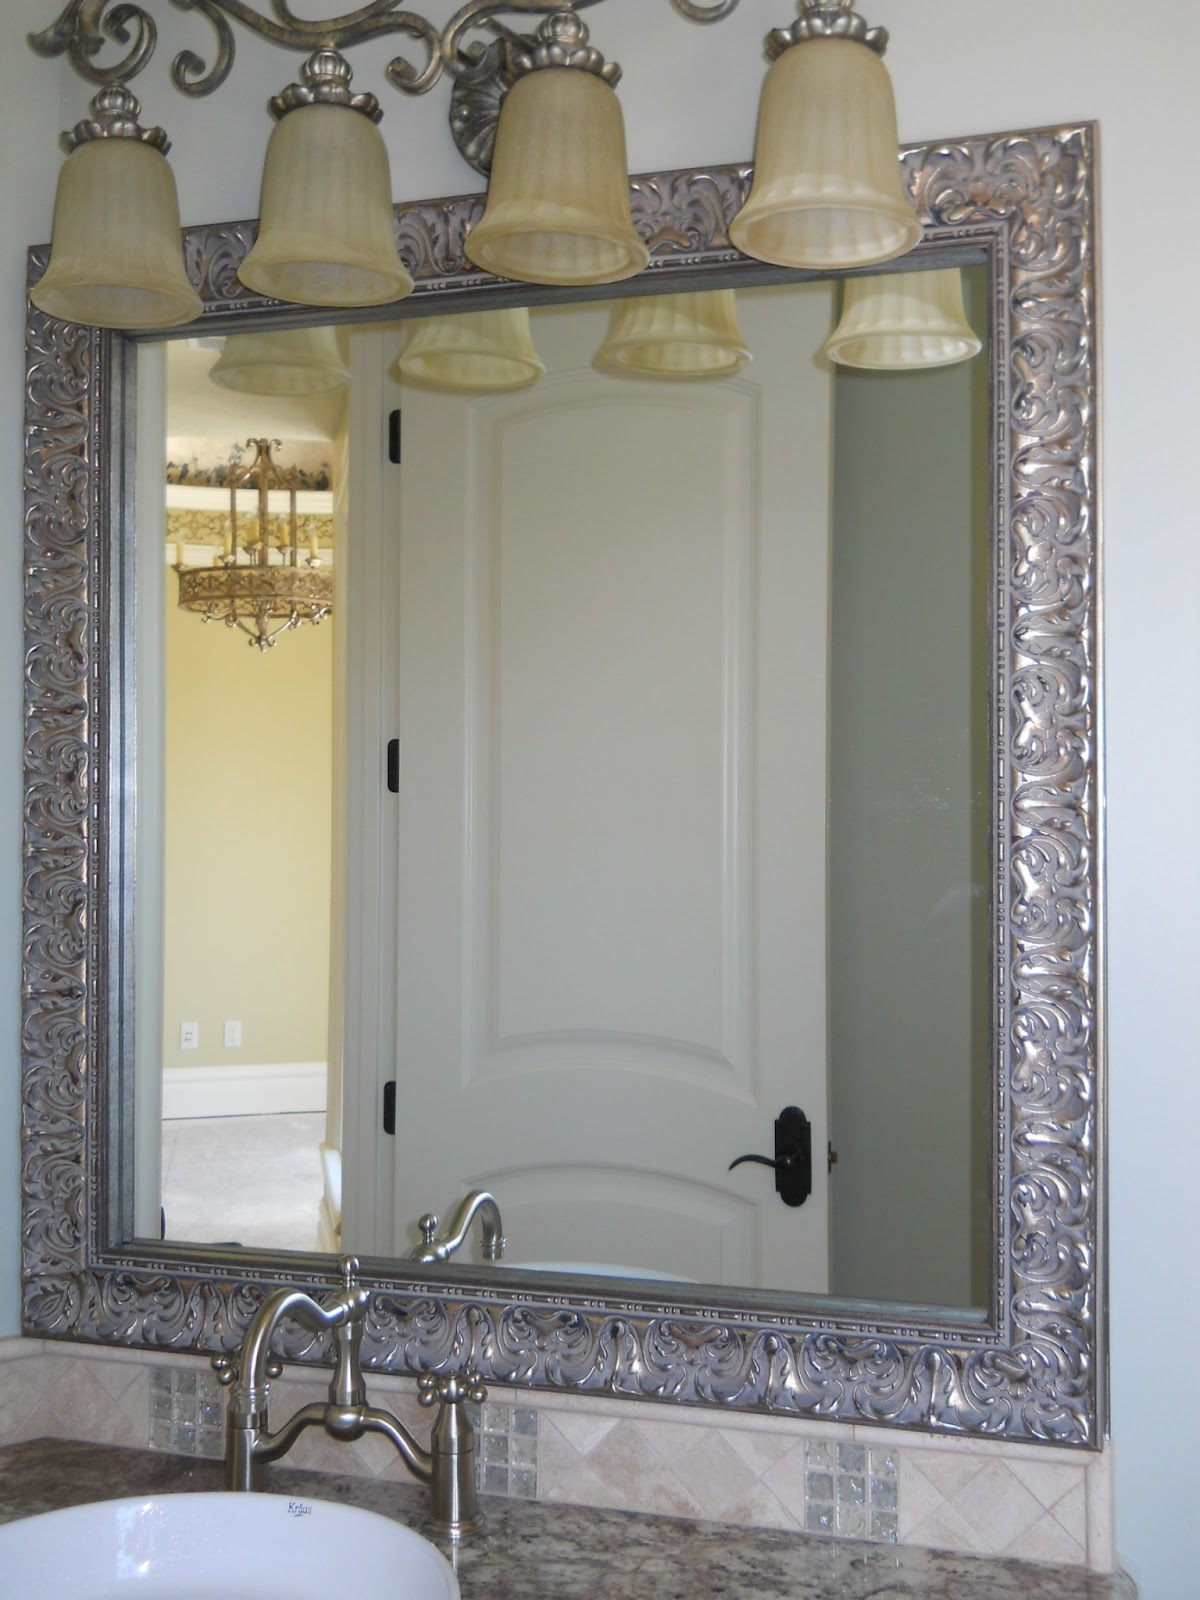 bathroom mirror undermount also double appearances to frame ceramic light vanity create oval mirrors for beige larger plus small widespread wall frameless design white framed faucet and sink chrome mounted stained furniture